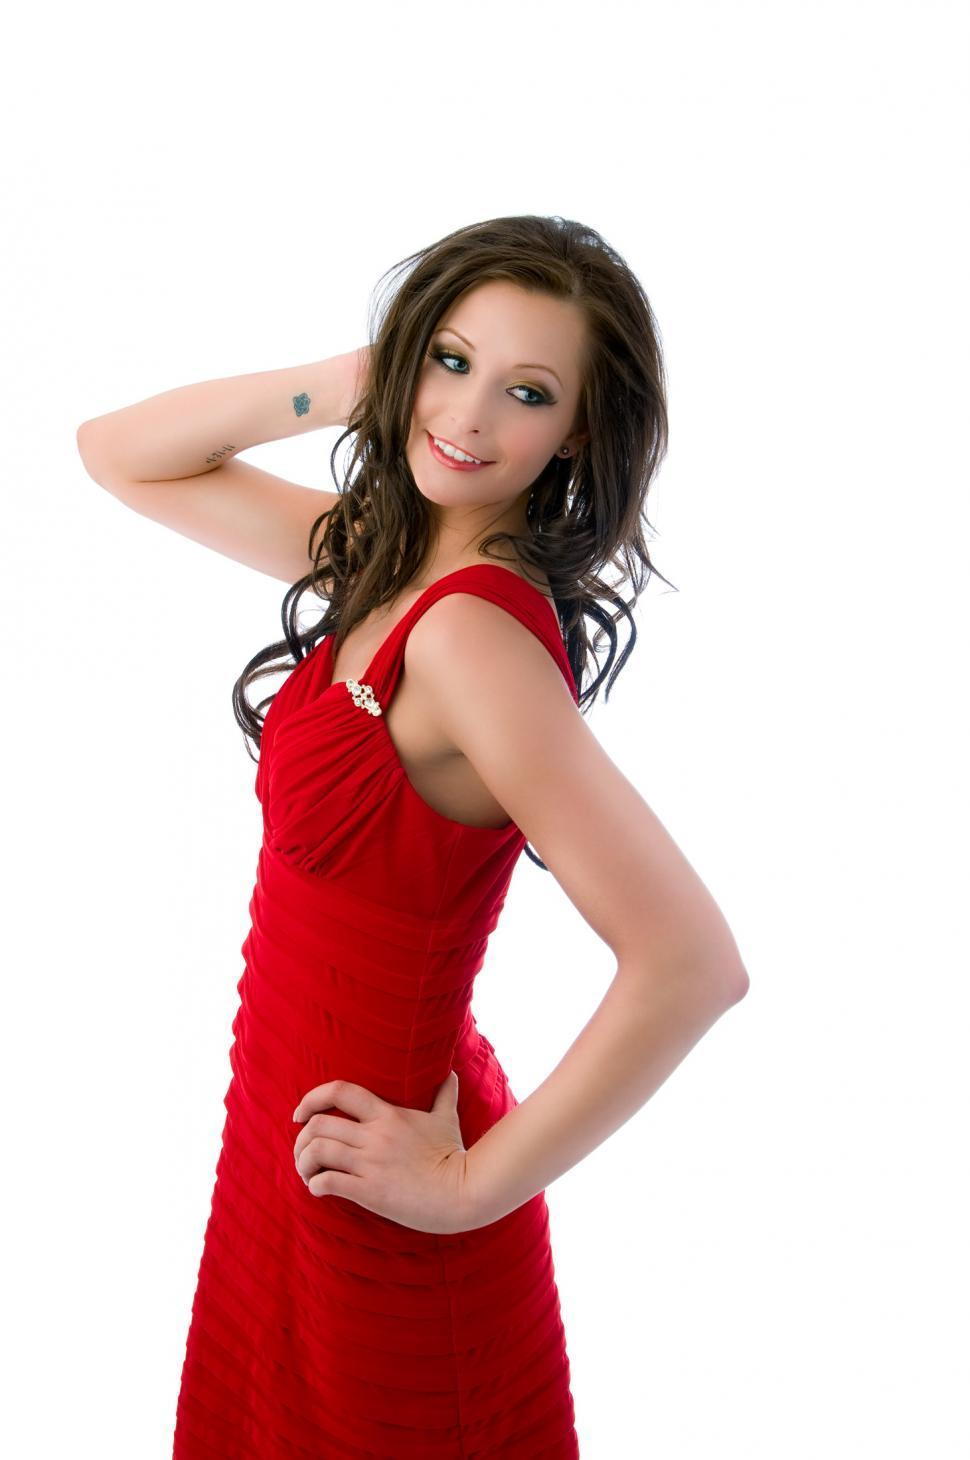 Download Free Stock HD Photo of Young woman in red dress standing Online